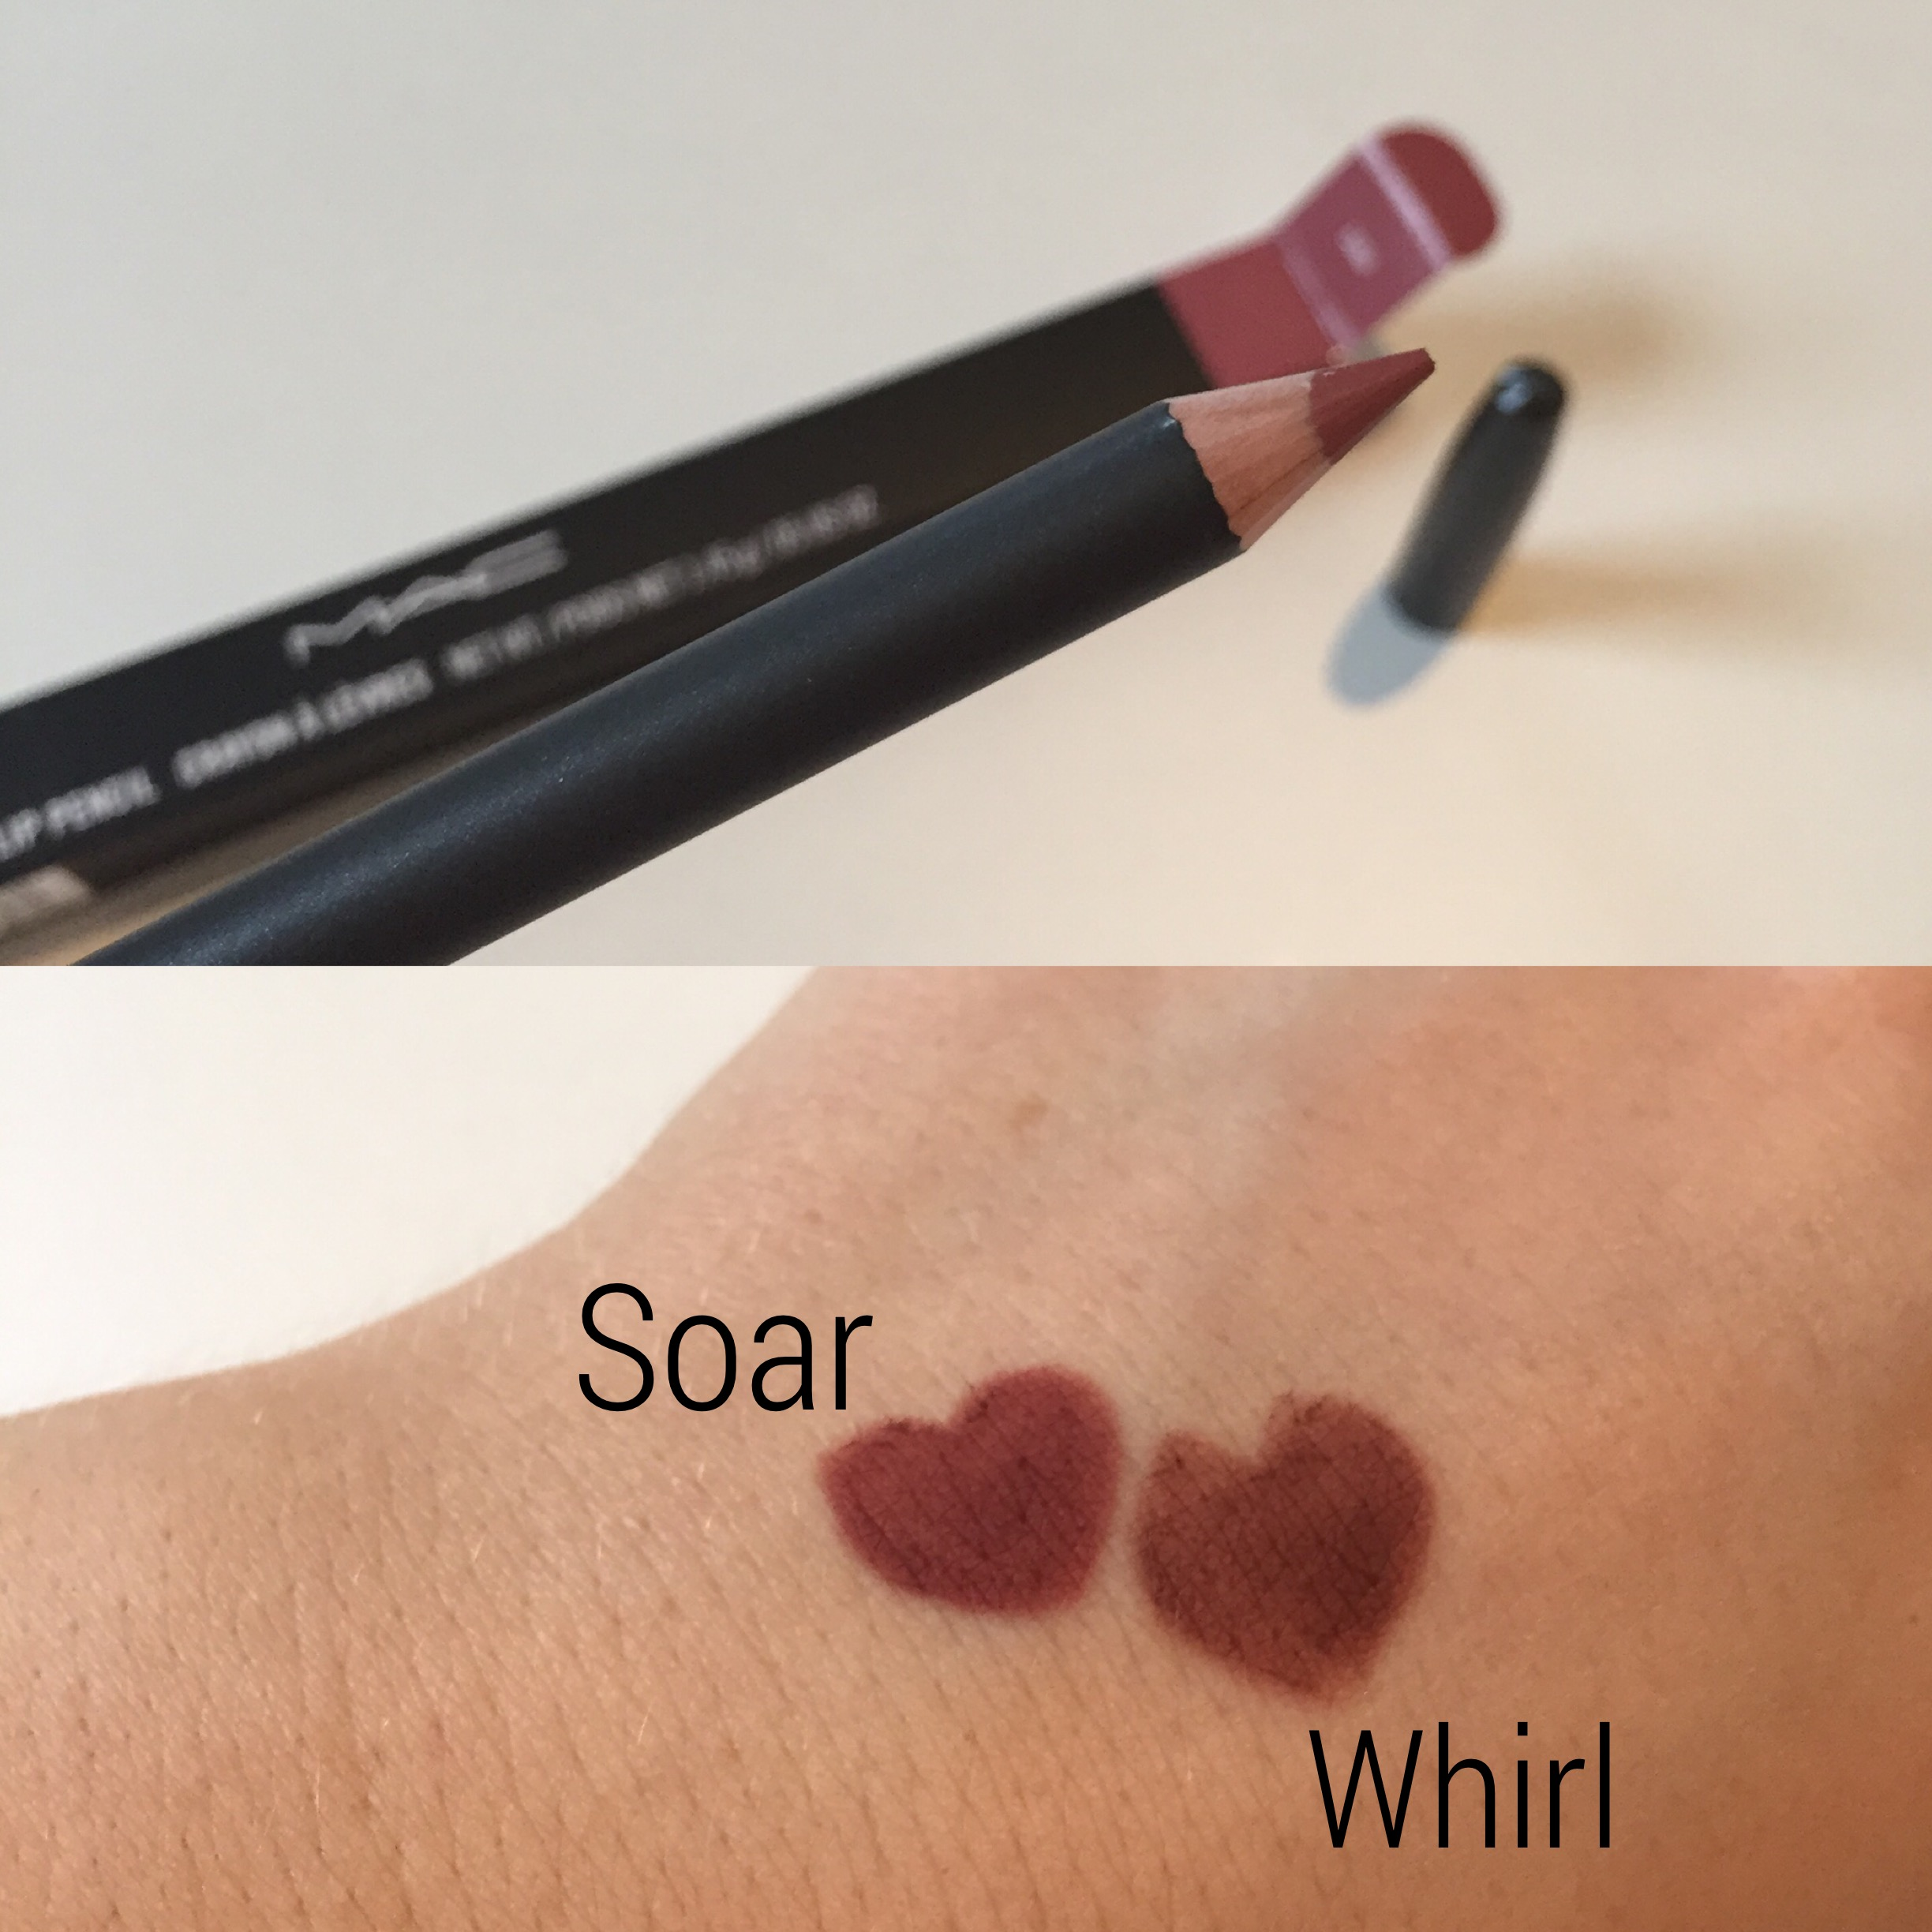 Favori M•A•C Soar Lip Pencil Giveaway | Emilie Clarke - Lifestyle Blog QE71